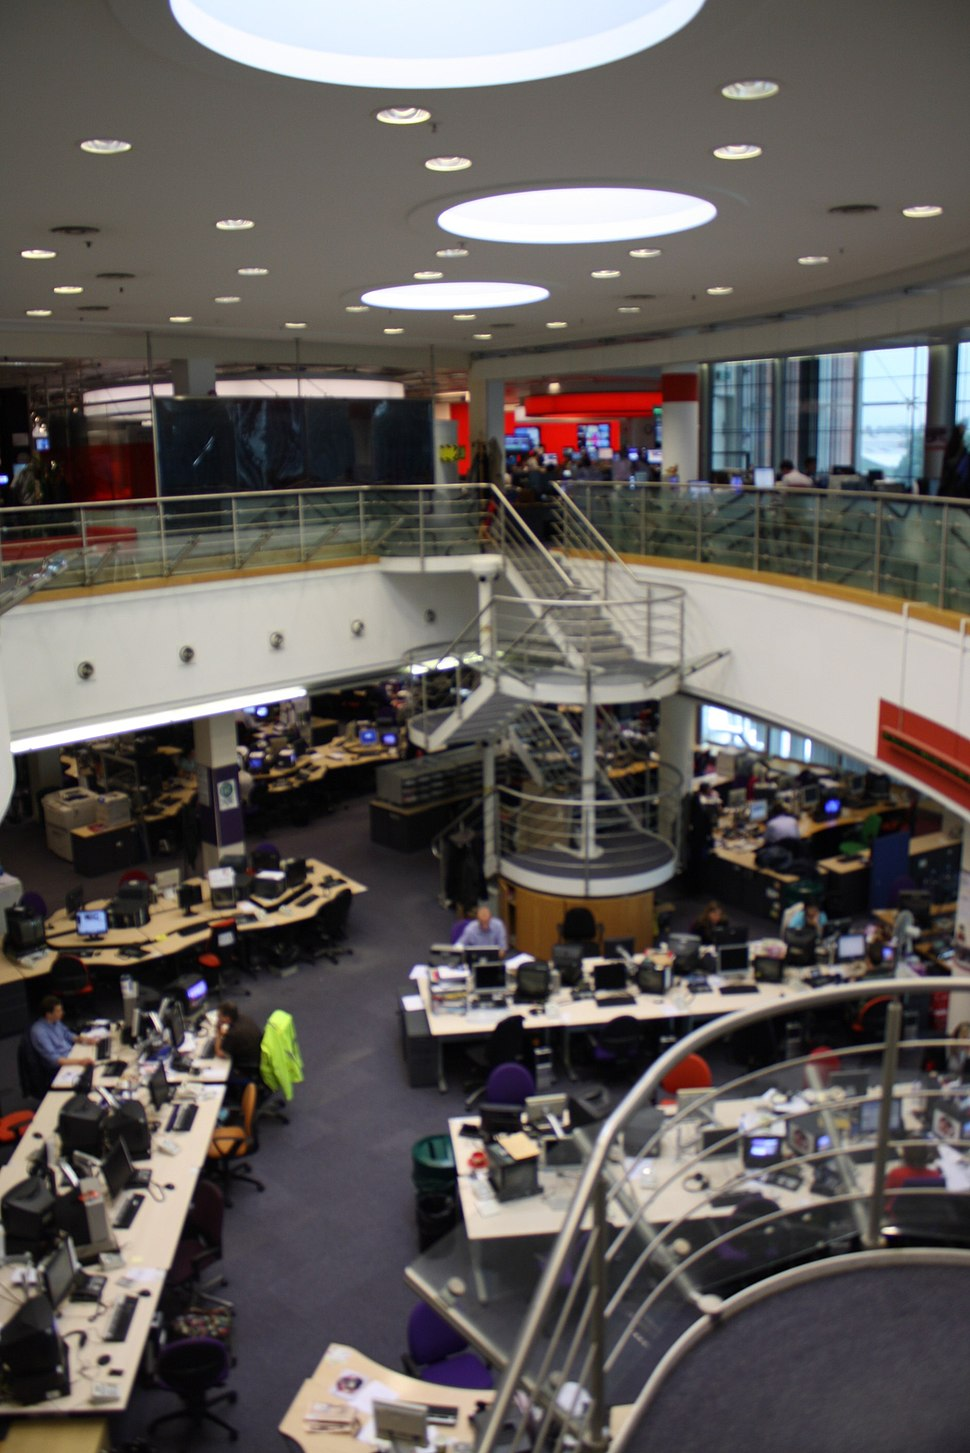 BBC Television Centre Newsroom KristynaM Flickr